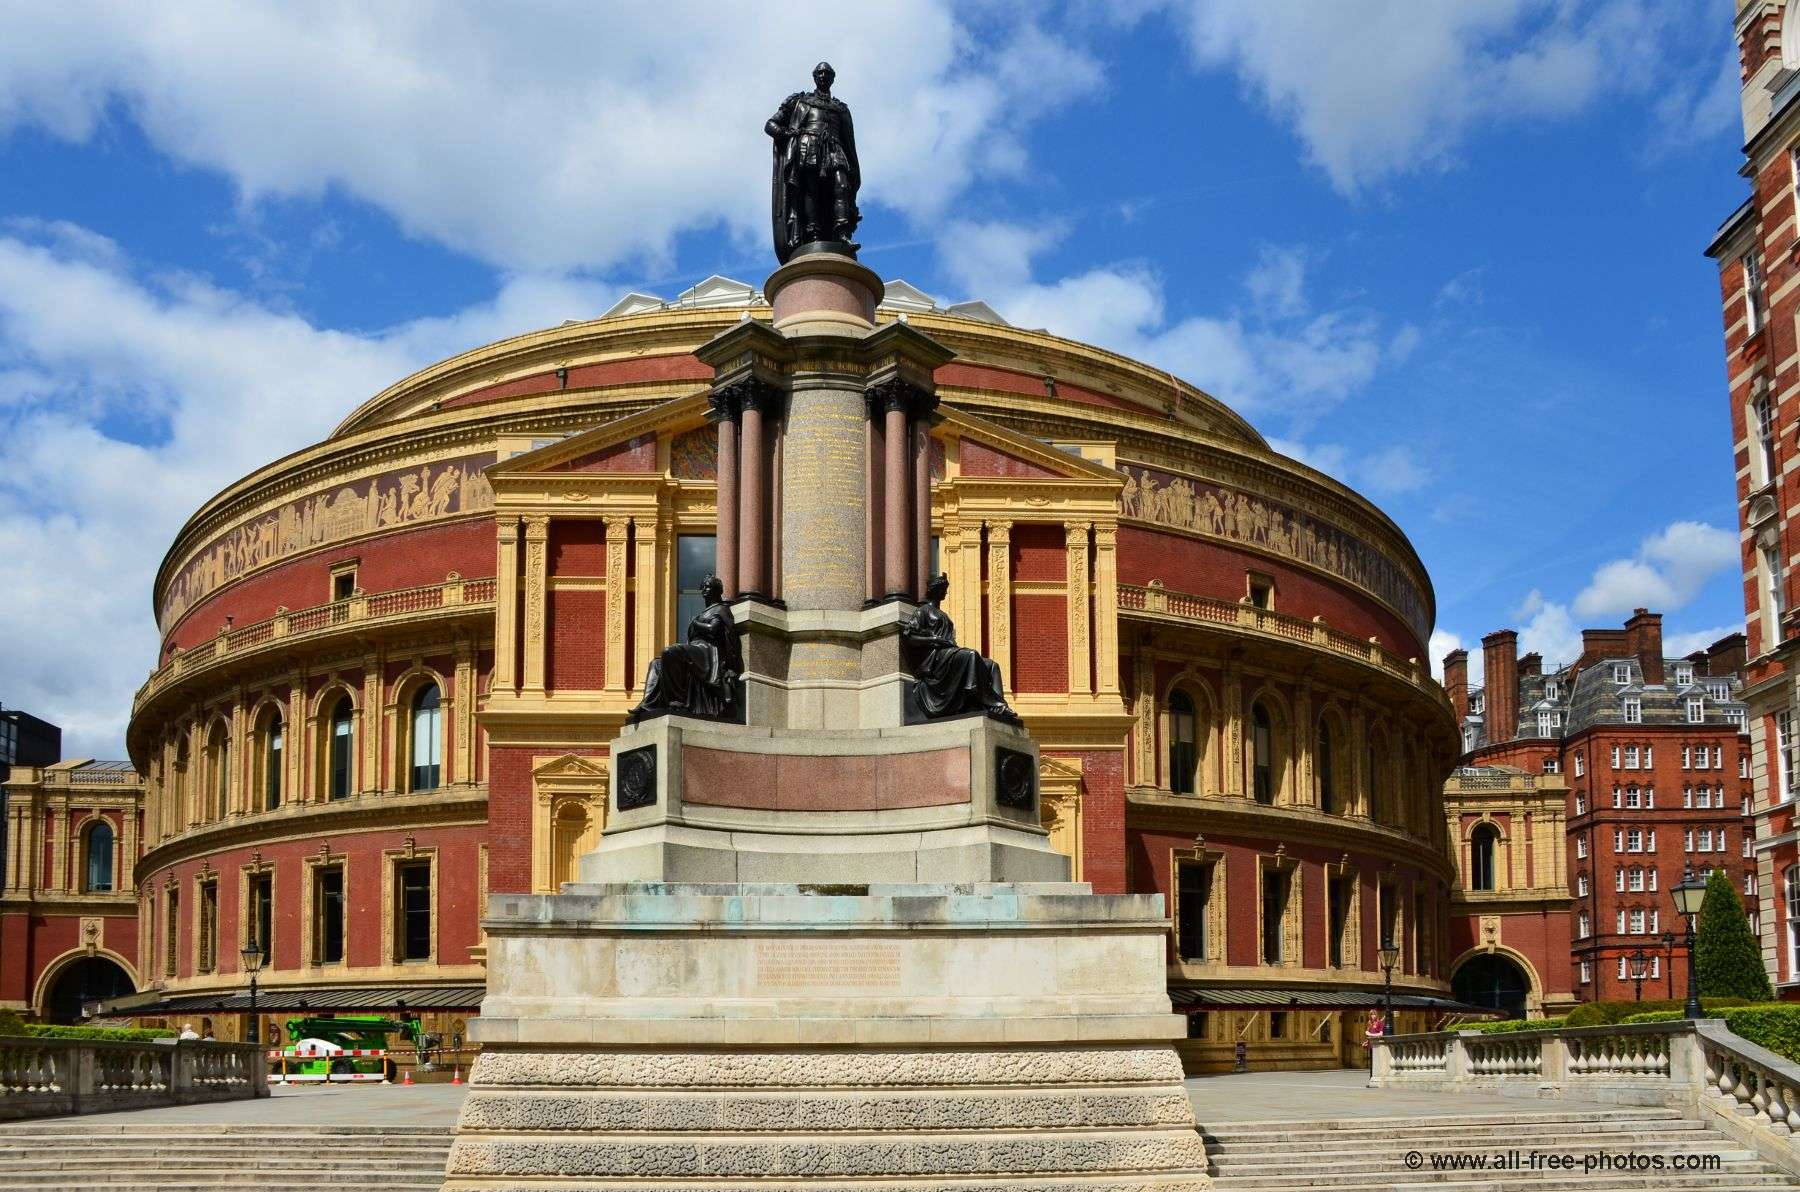 Royal Albert Hall - Londres - Reino Unido